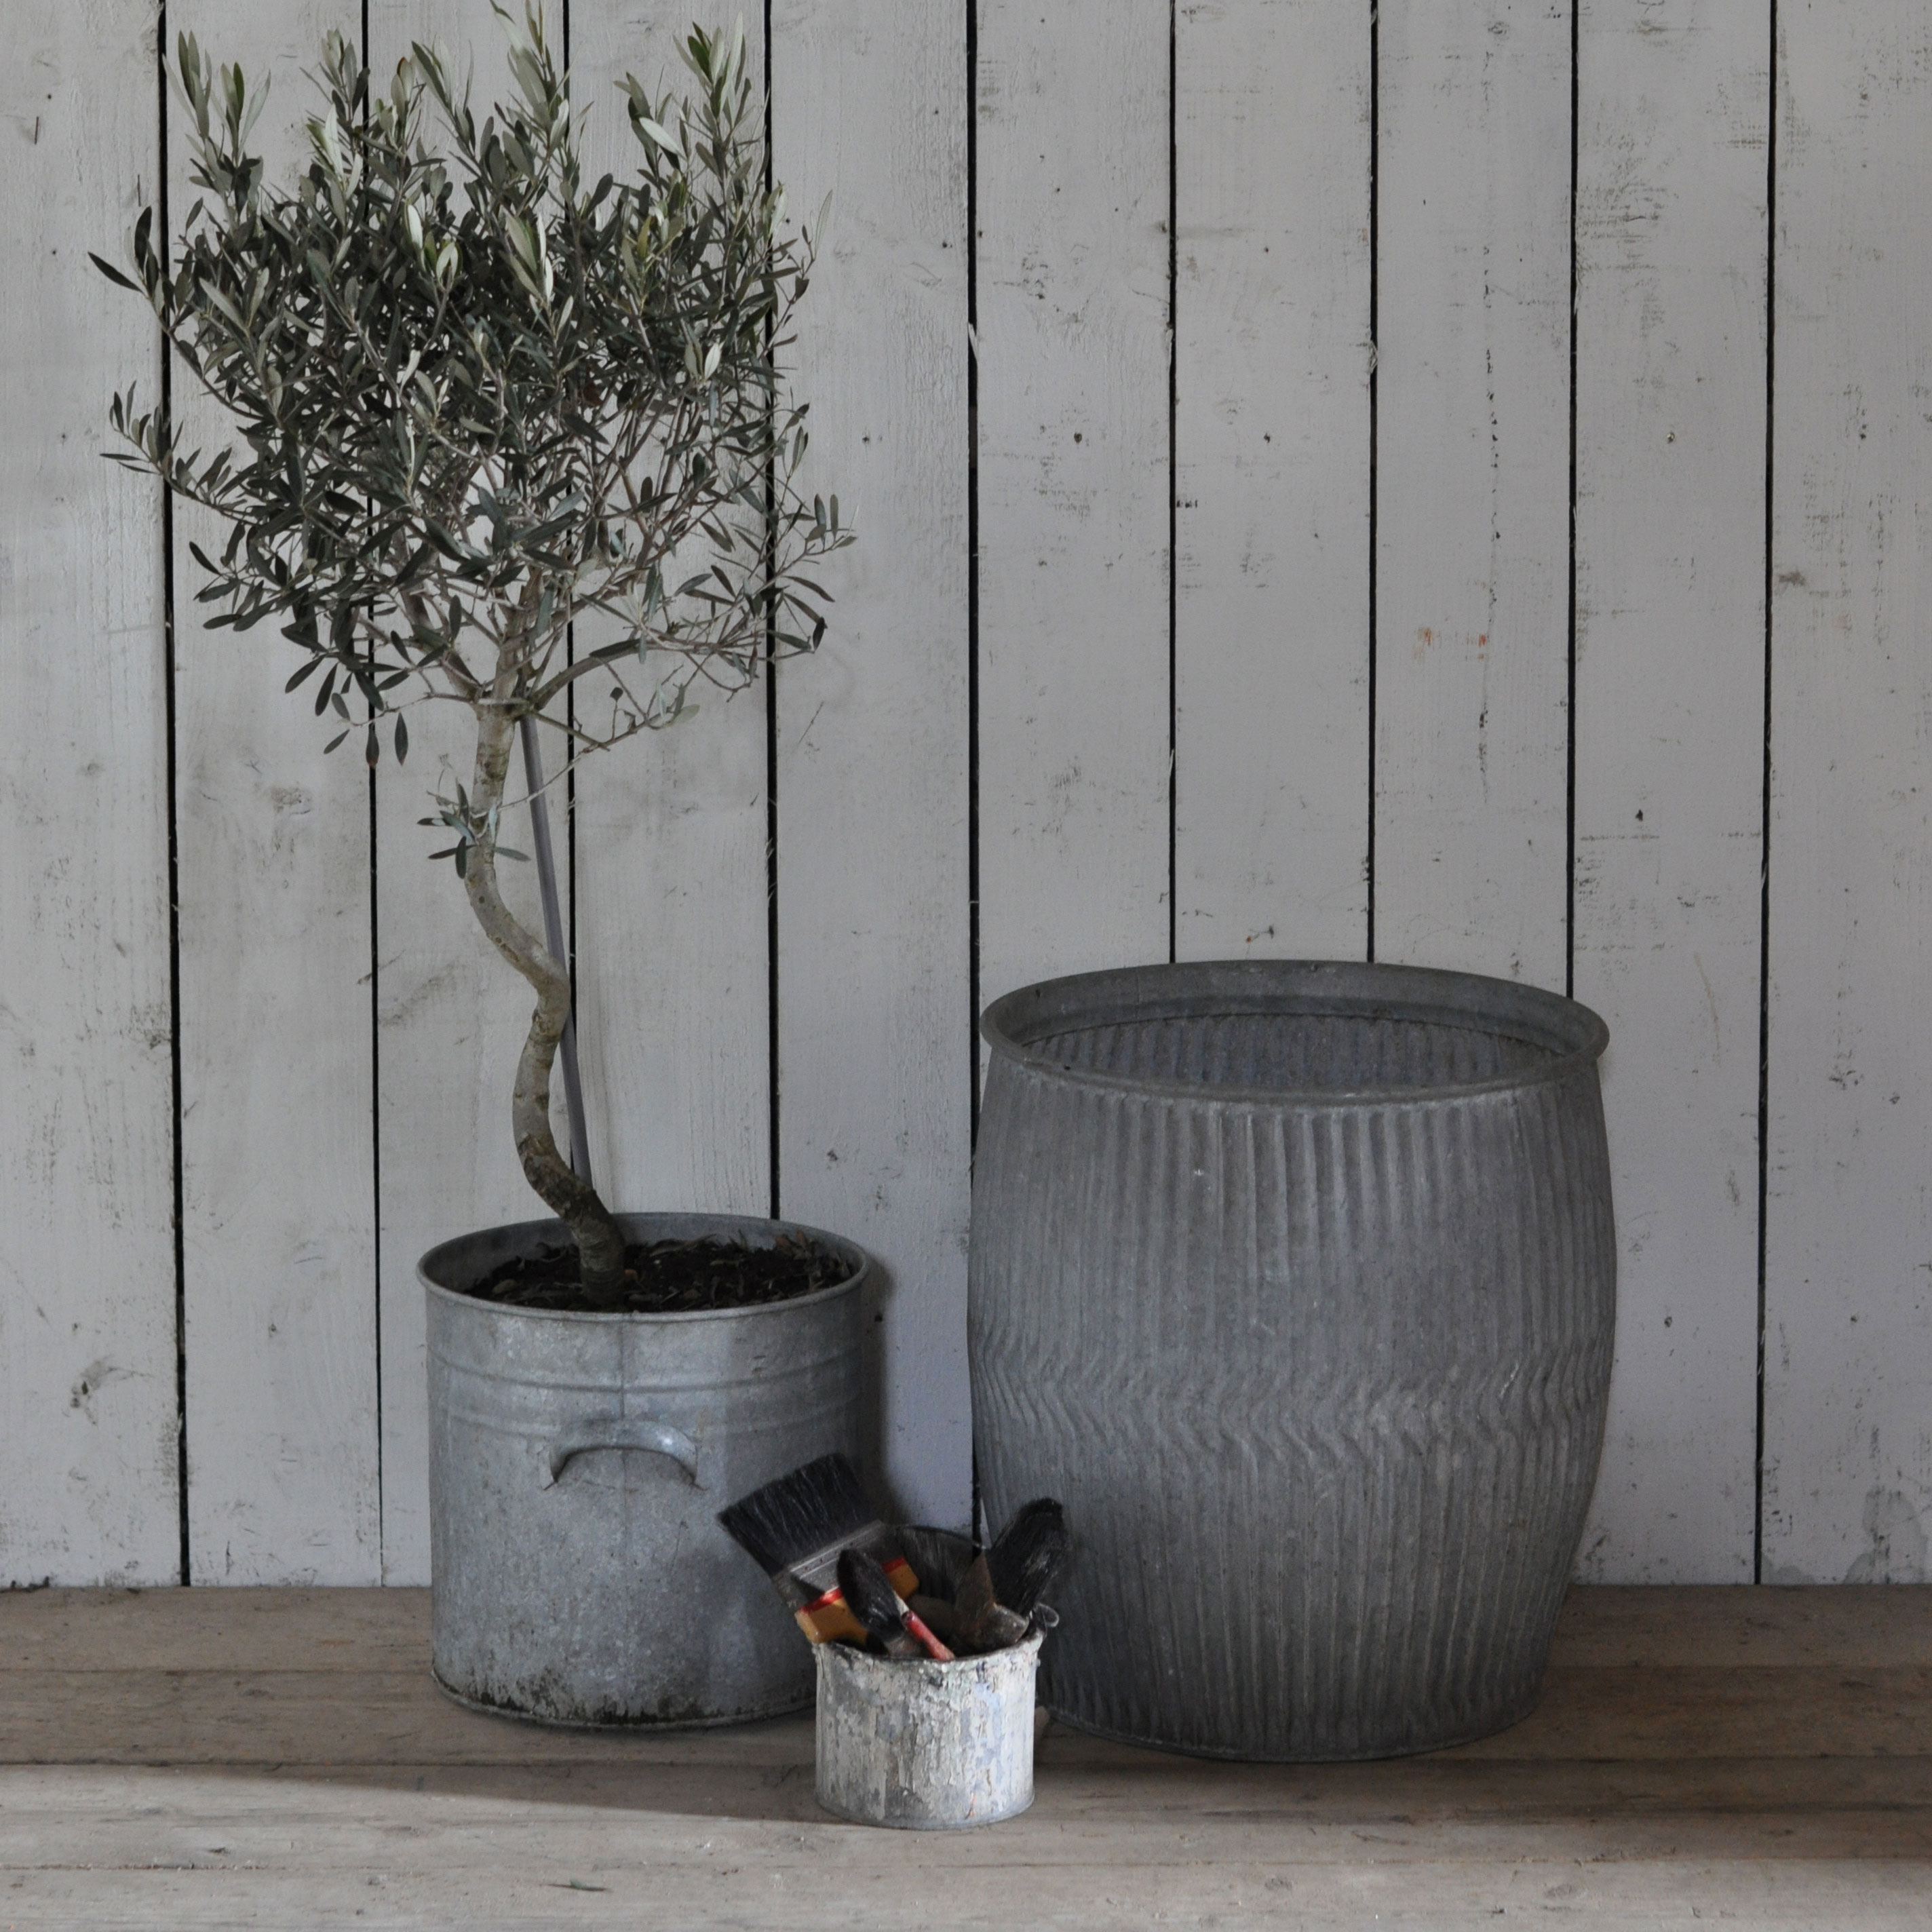 Galvanised Antique Wash Tub Zinc Dolly Planter | Home Barn on zinc planter boackround on white, zinc garden statues, zinc bowls, zinc furniture, zinc window boxes,